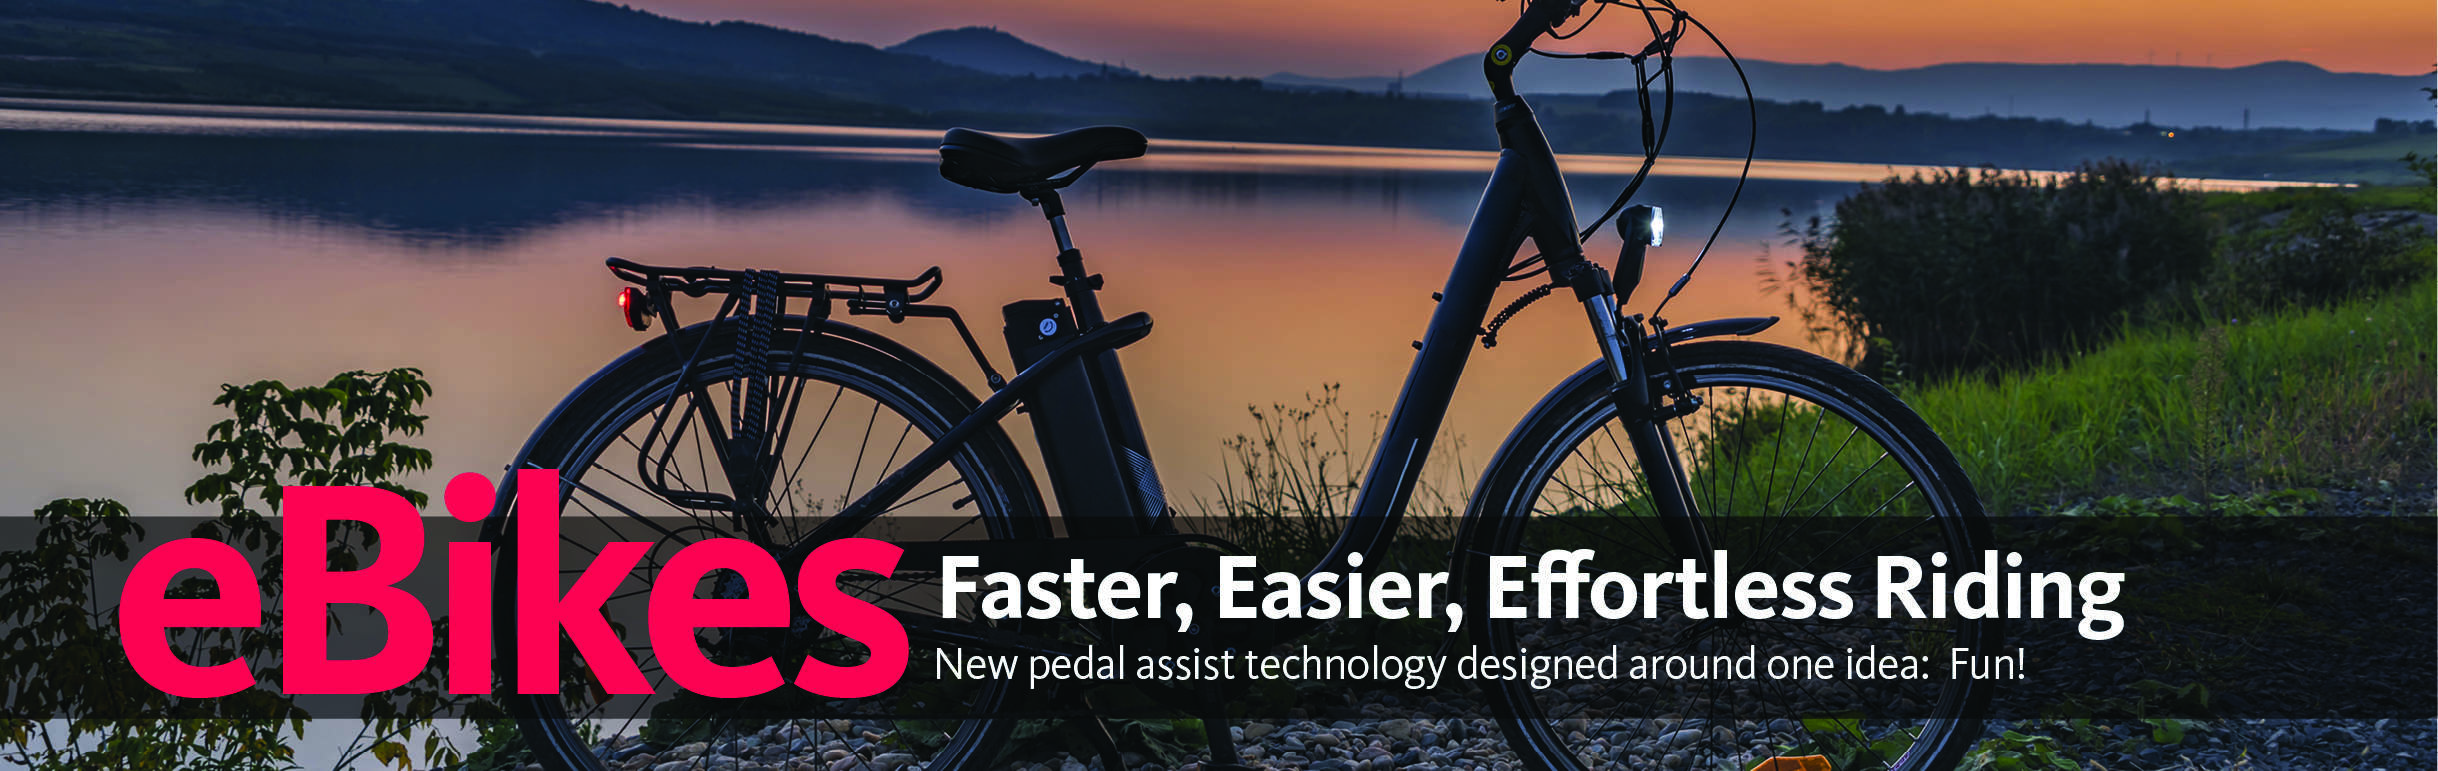 Electric bikes provide faster, easier, effortless riding.